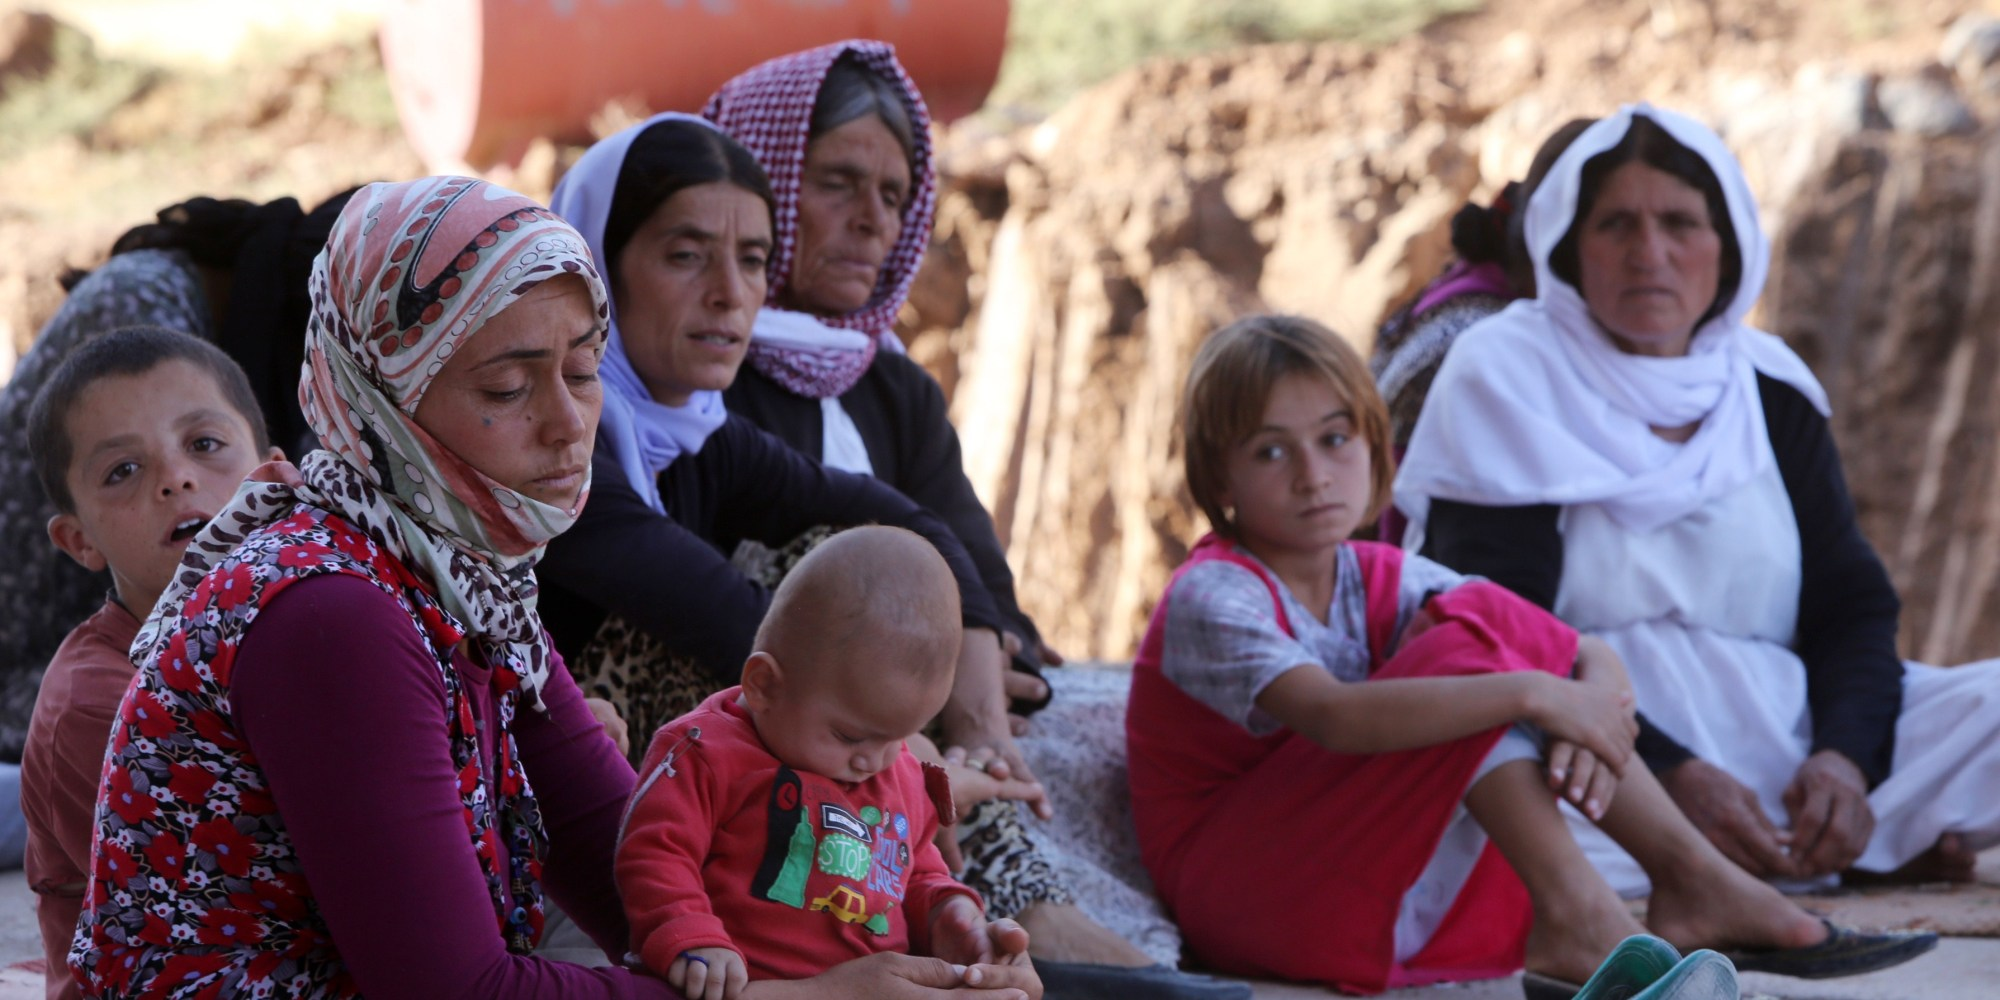 Yazidi religious beliefs history facts and traditions of iraq s